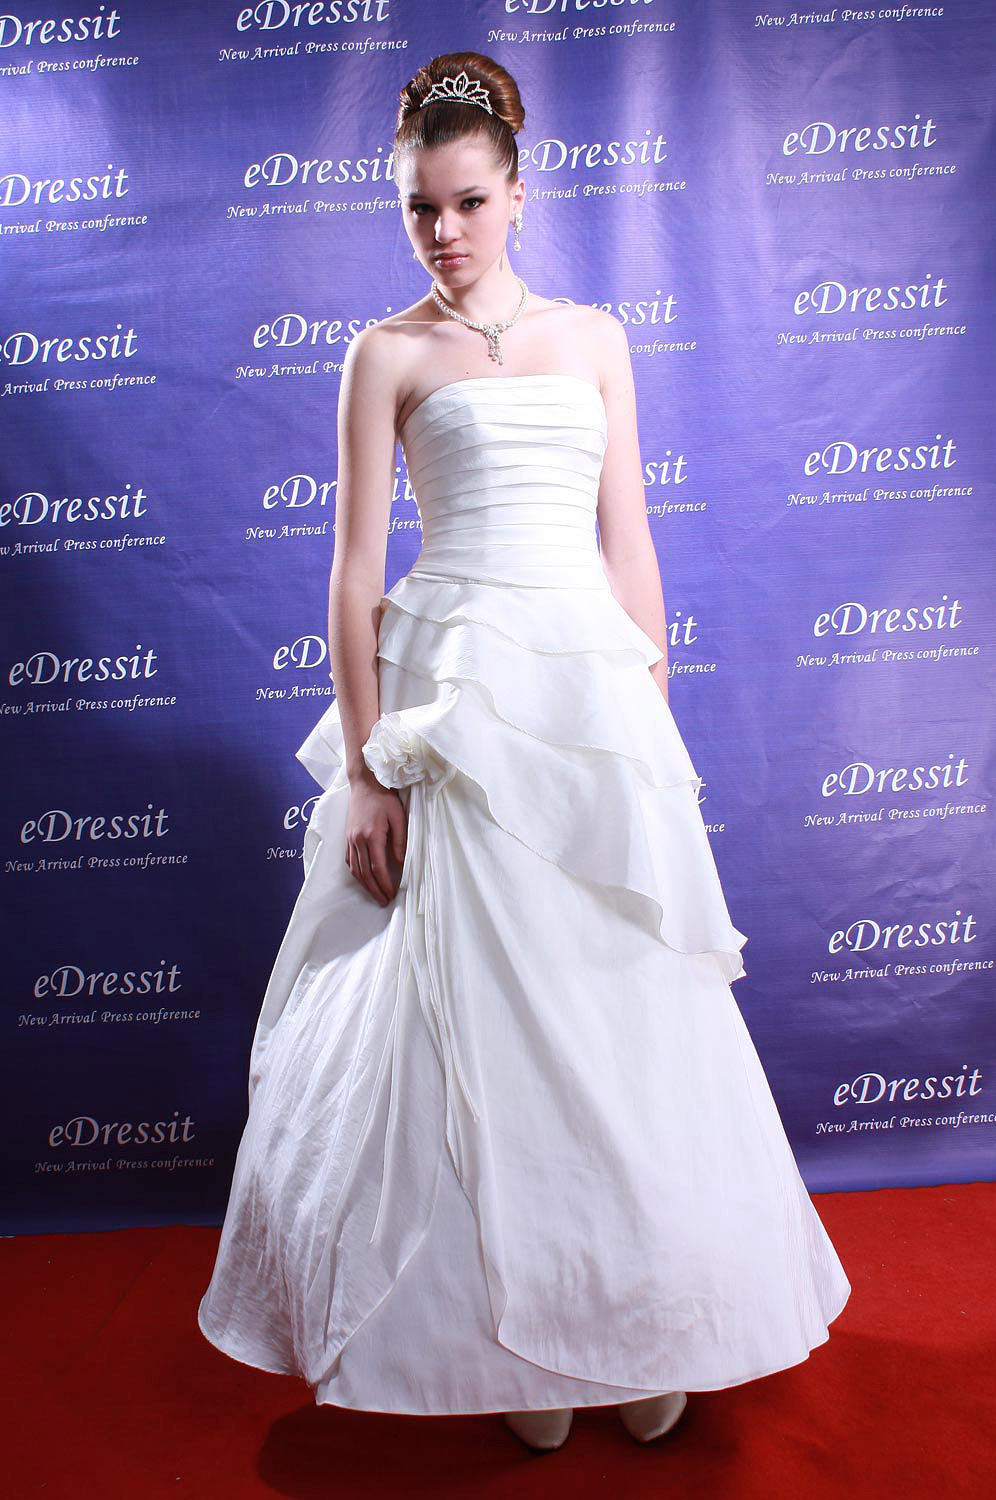 eDressit White Prom Gown Wedding Dress (Custom-made) (01080707)